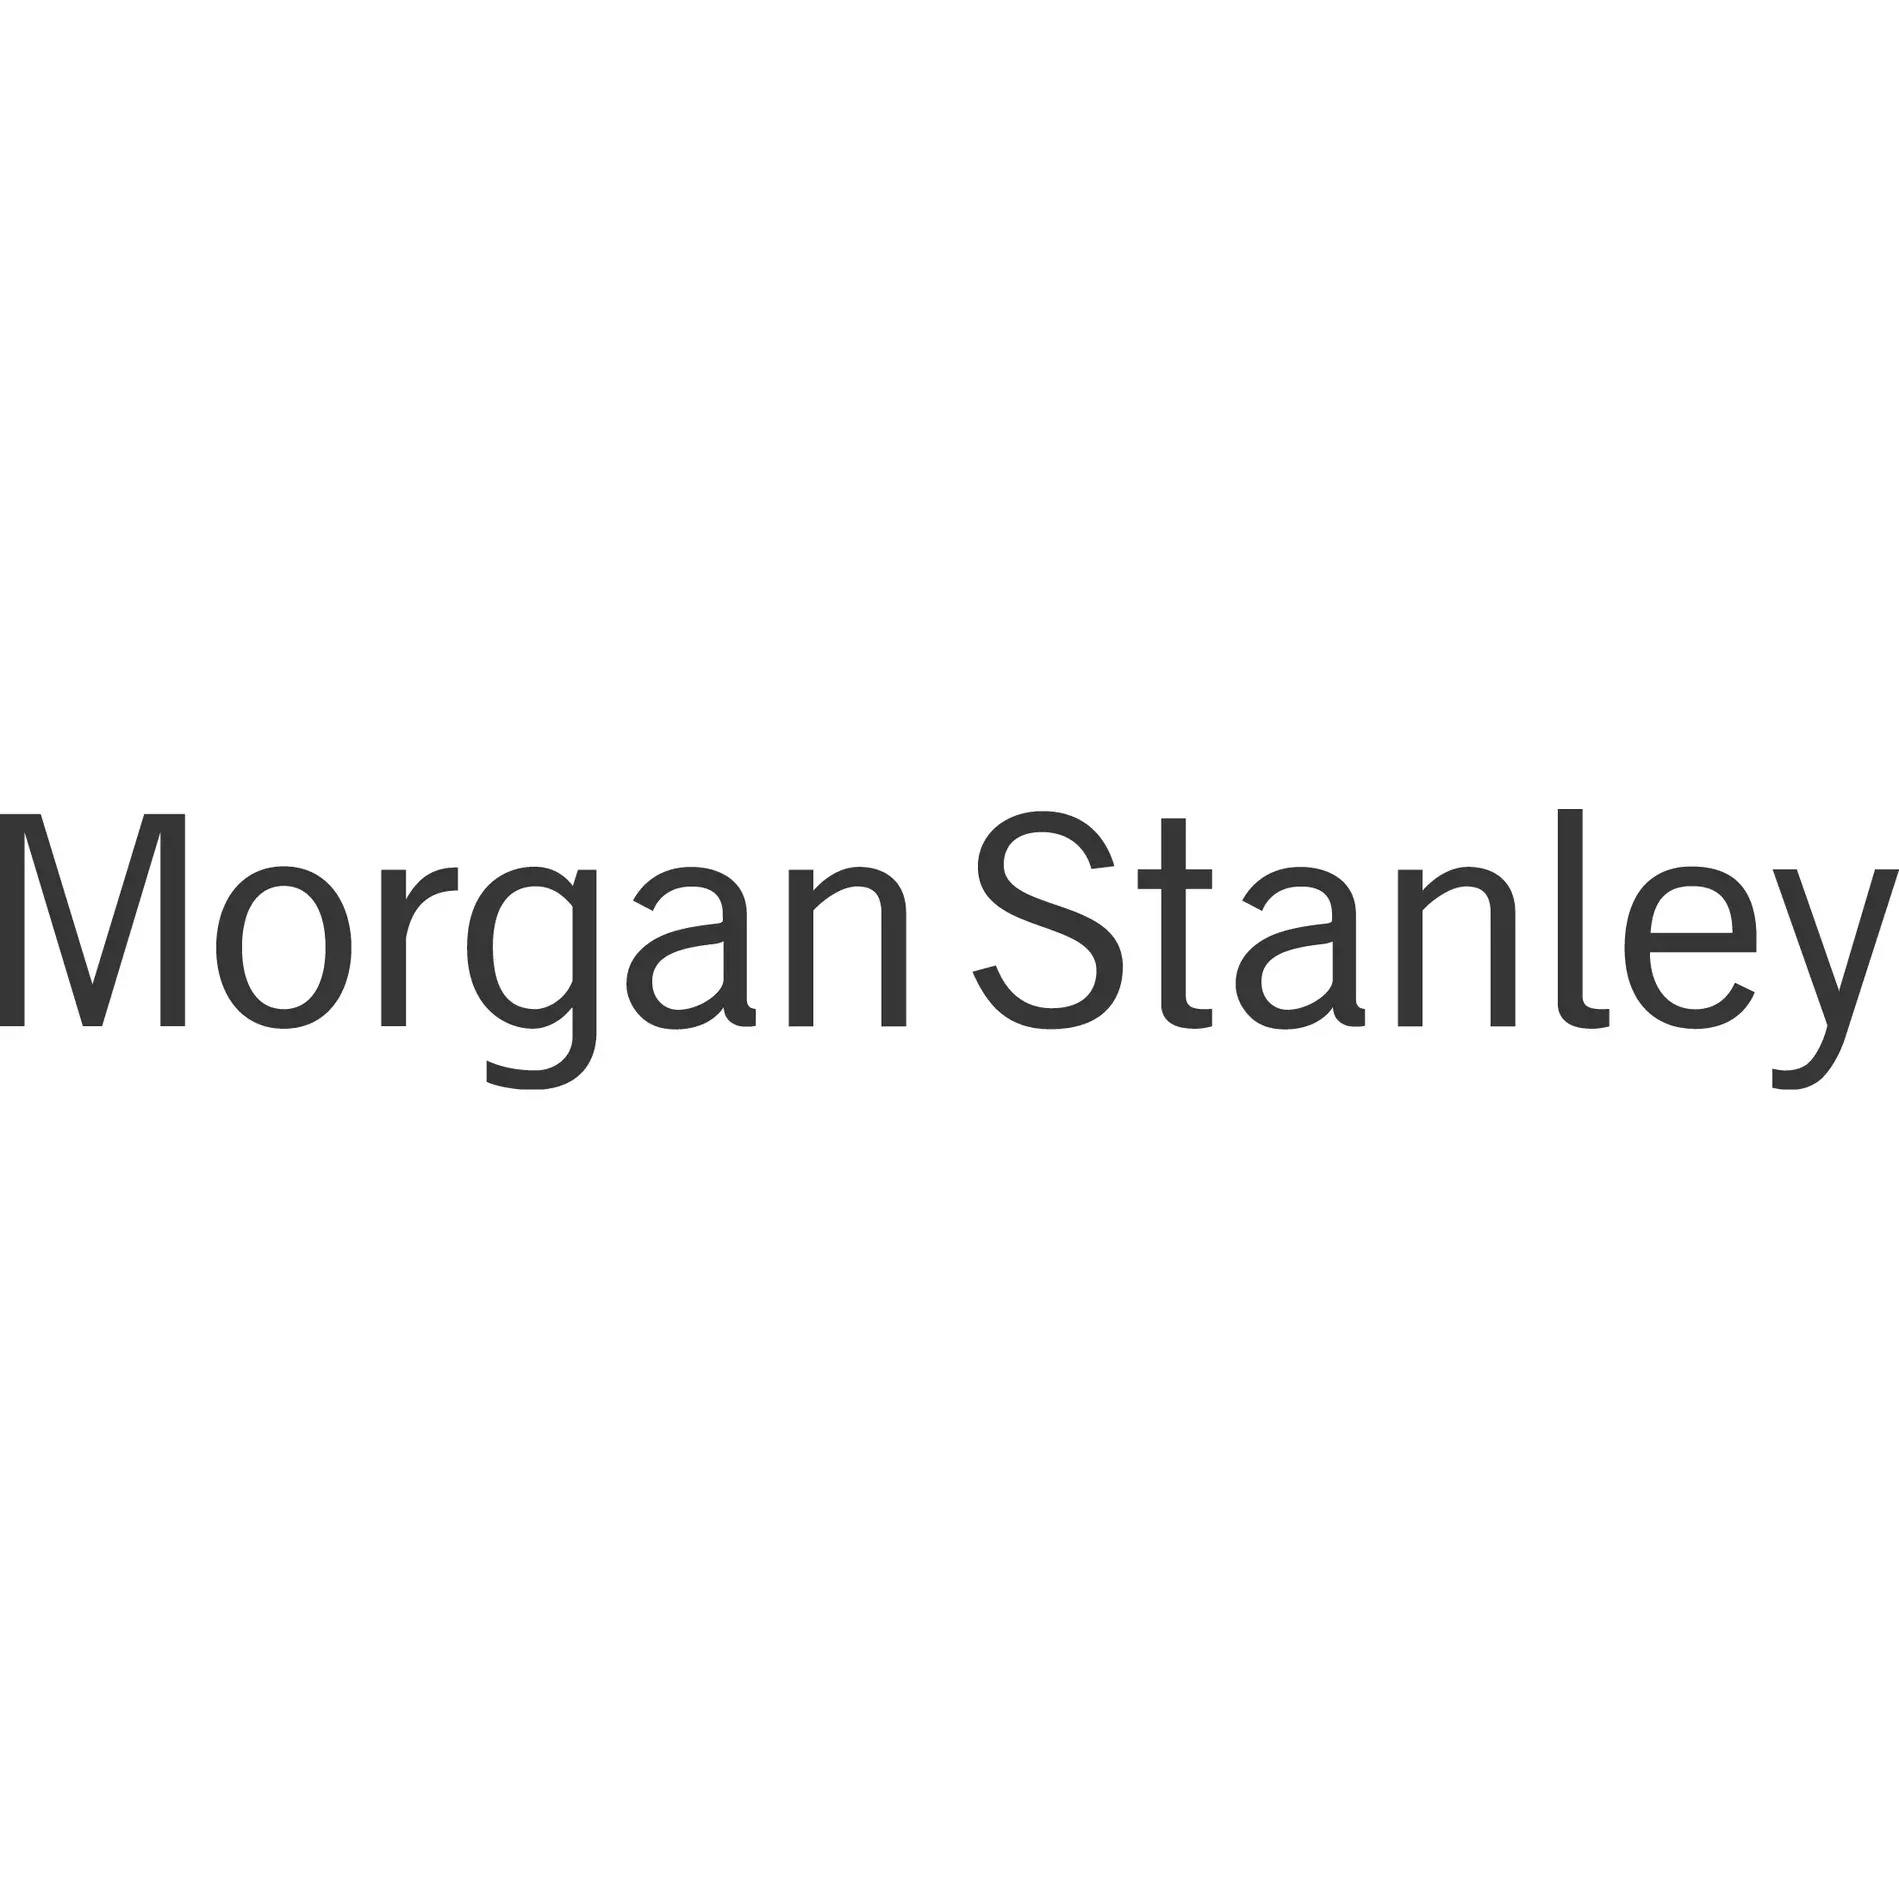 The JH Group - Morgan Stanley